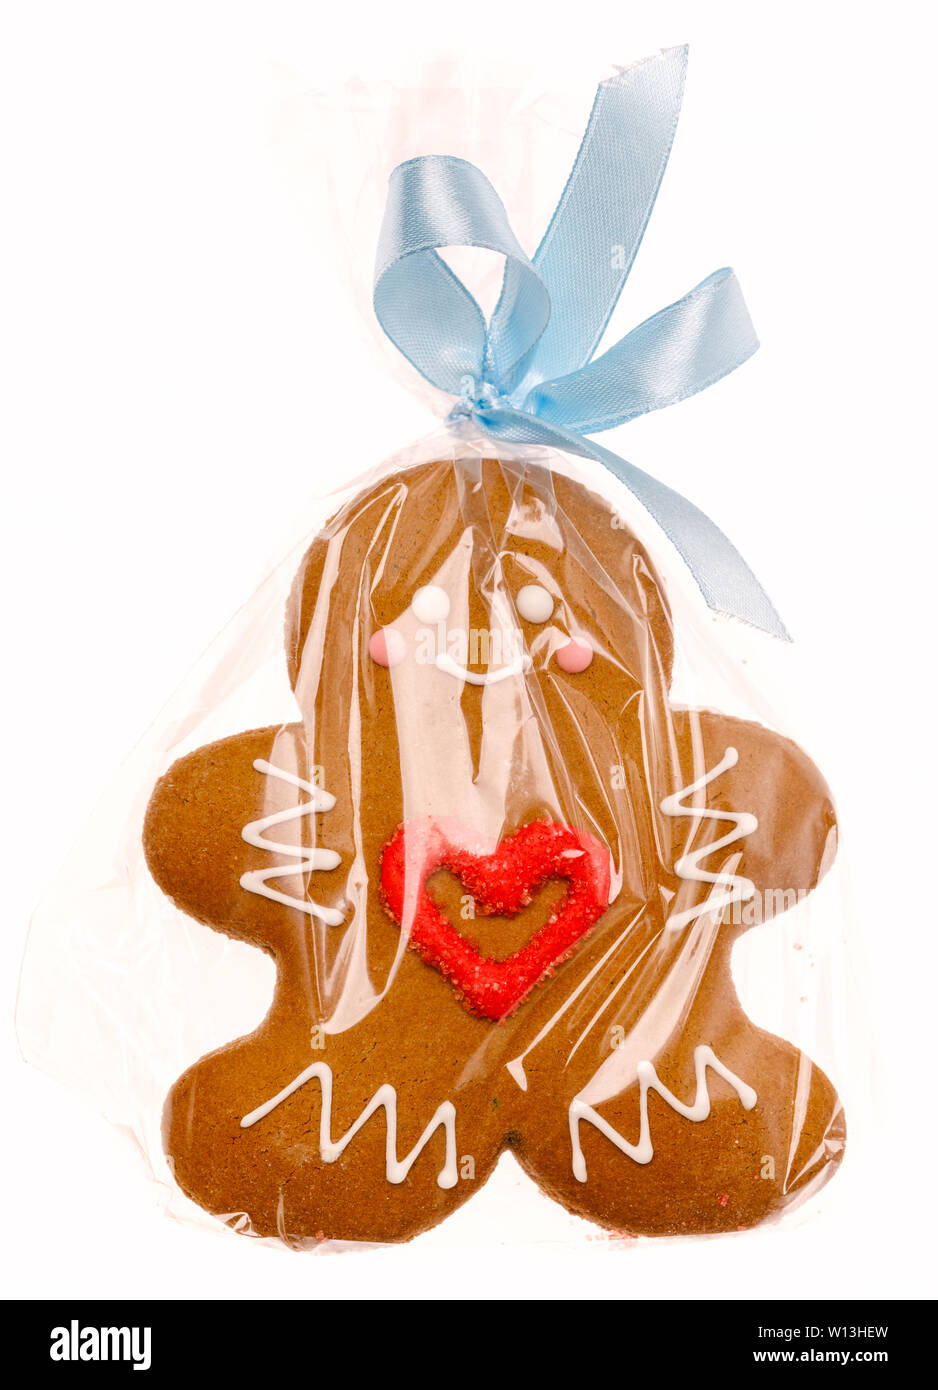 Iced Christmas Gingerbread Man Sugar Cookie Wrapped In Plastic